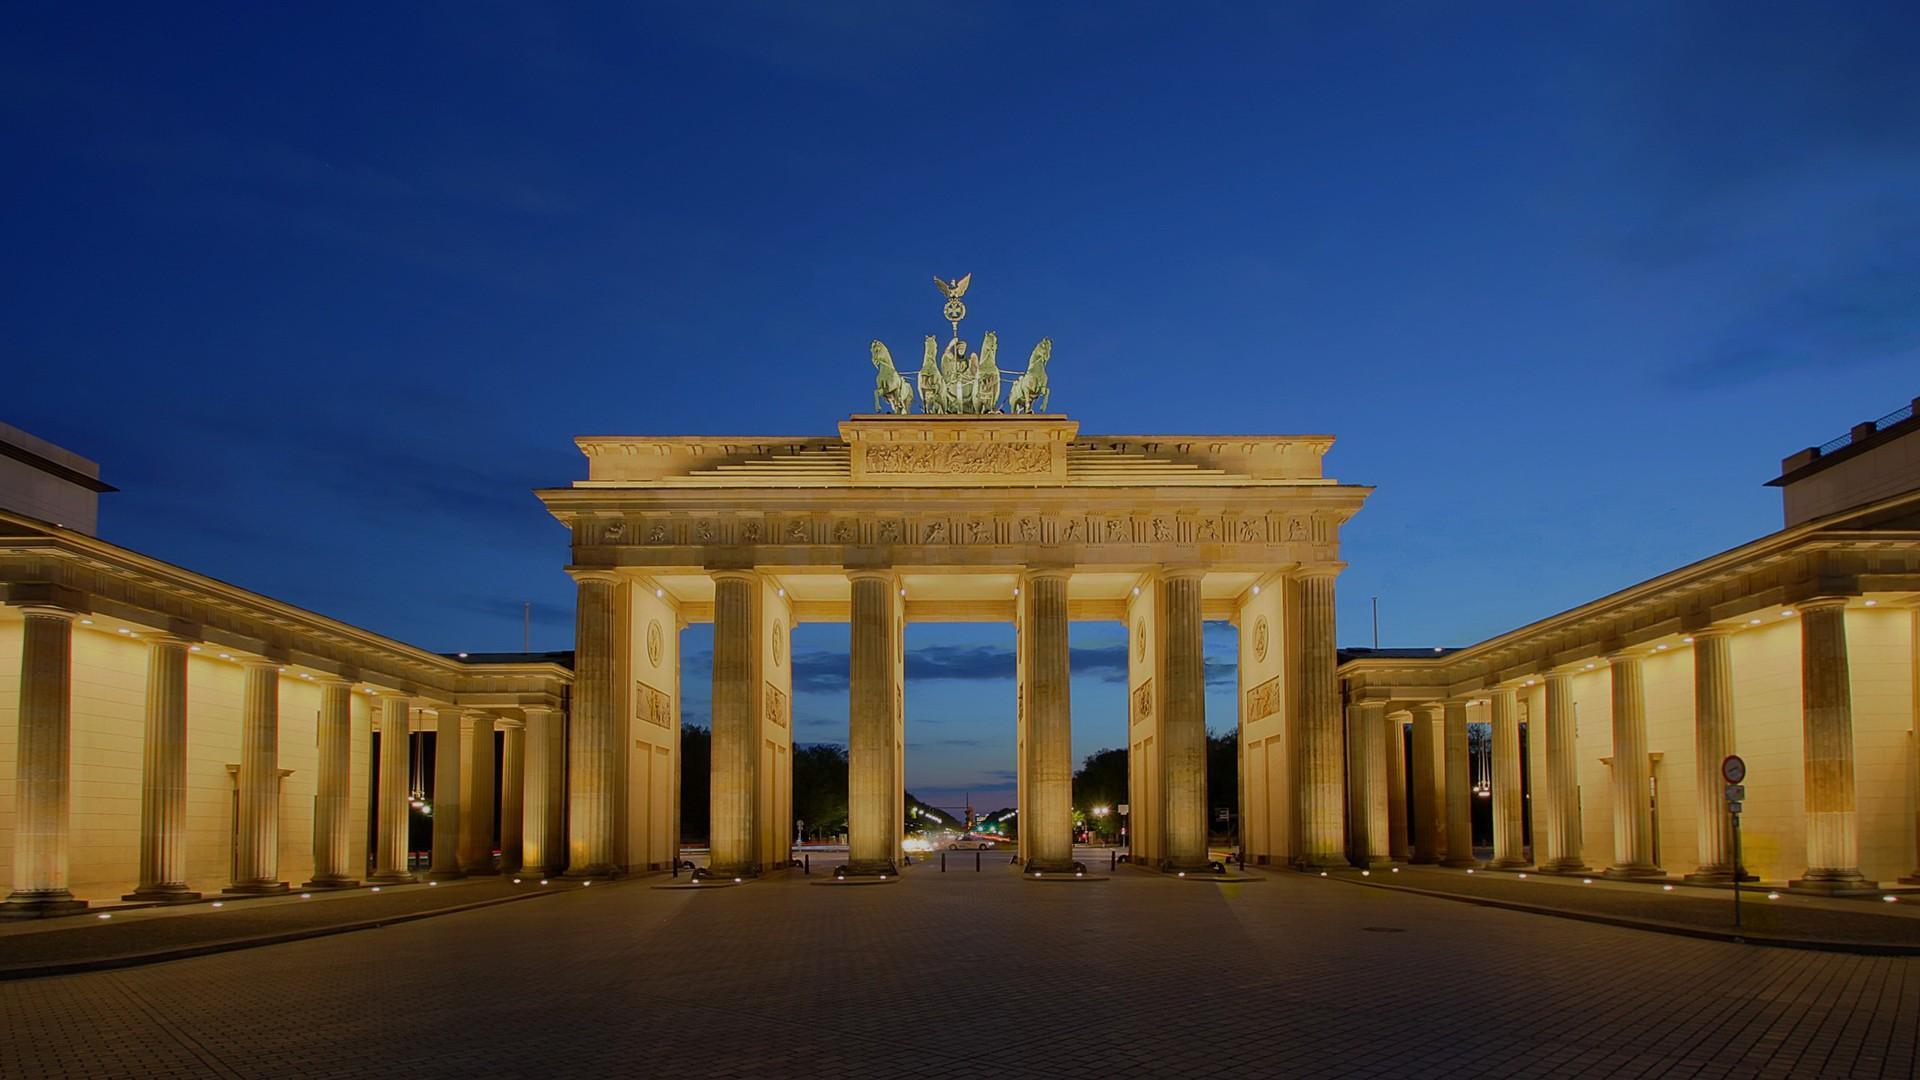 Brandenburg Gate Stunning Wallpapers – Travel HD Wallpapers